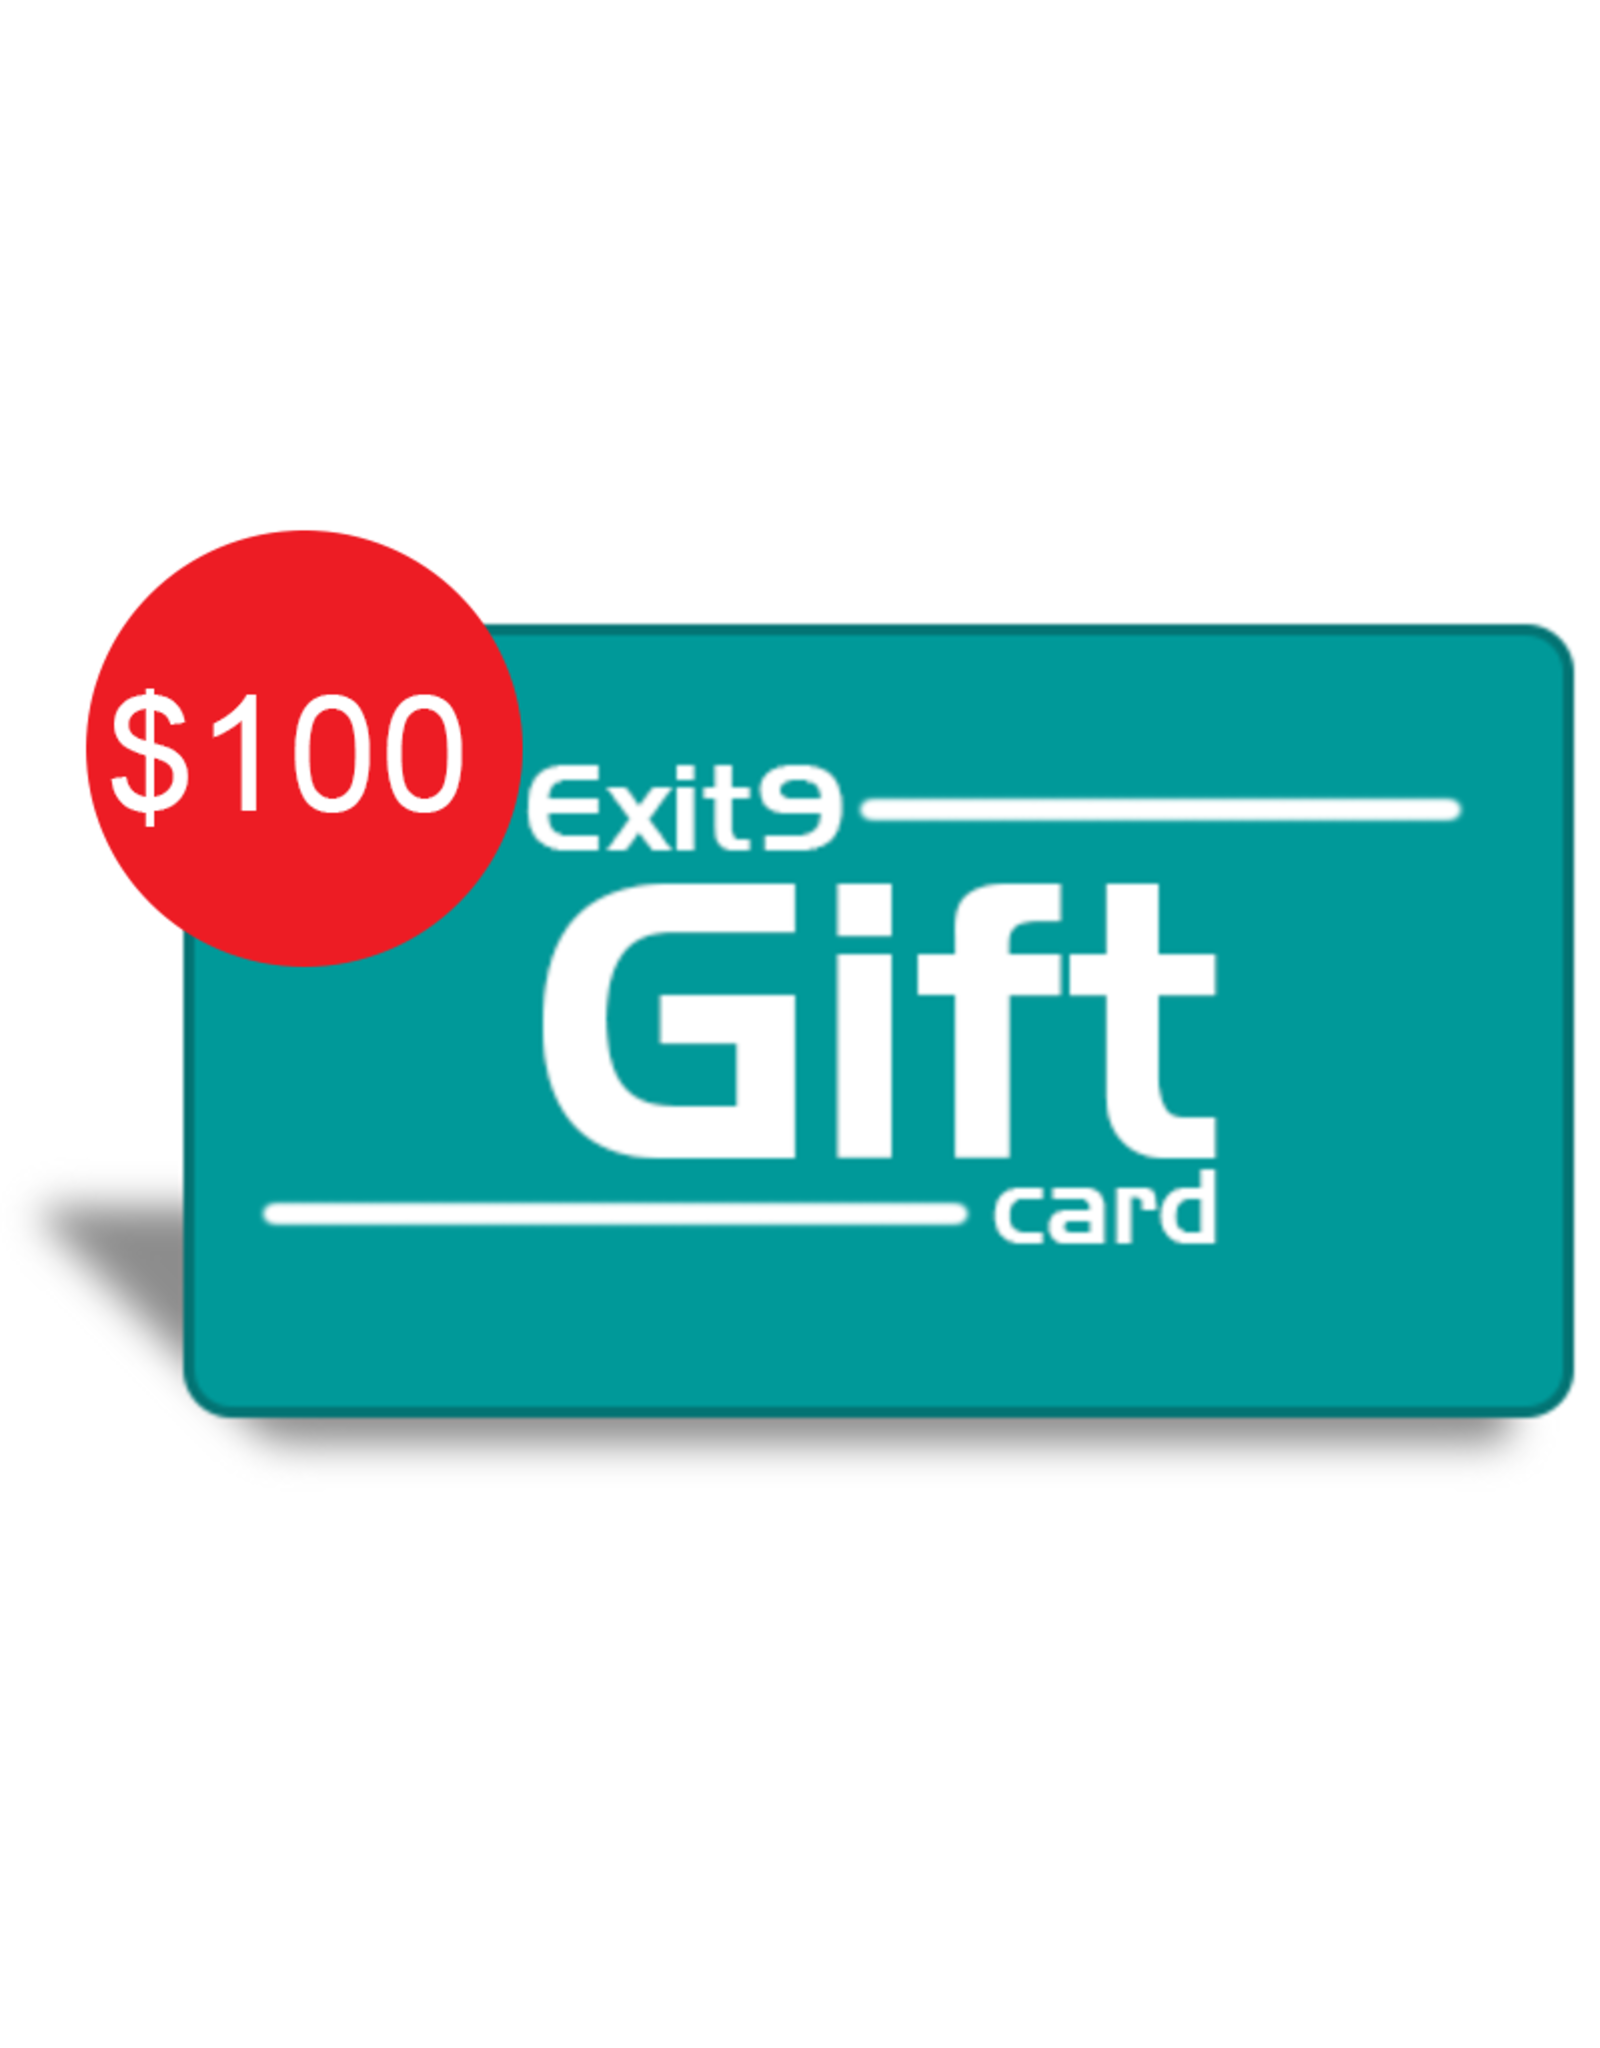 Exit9 Gift Card $100